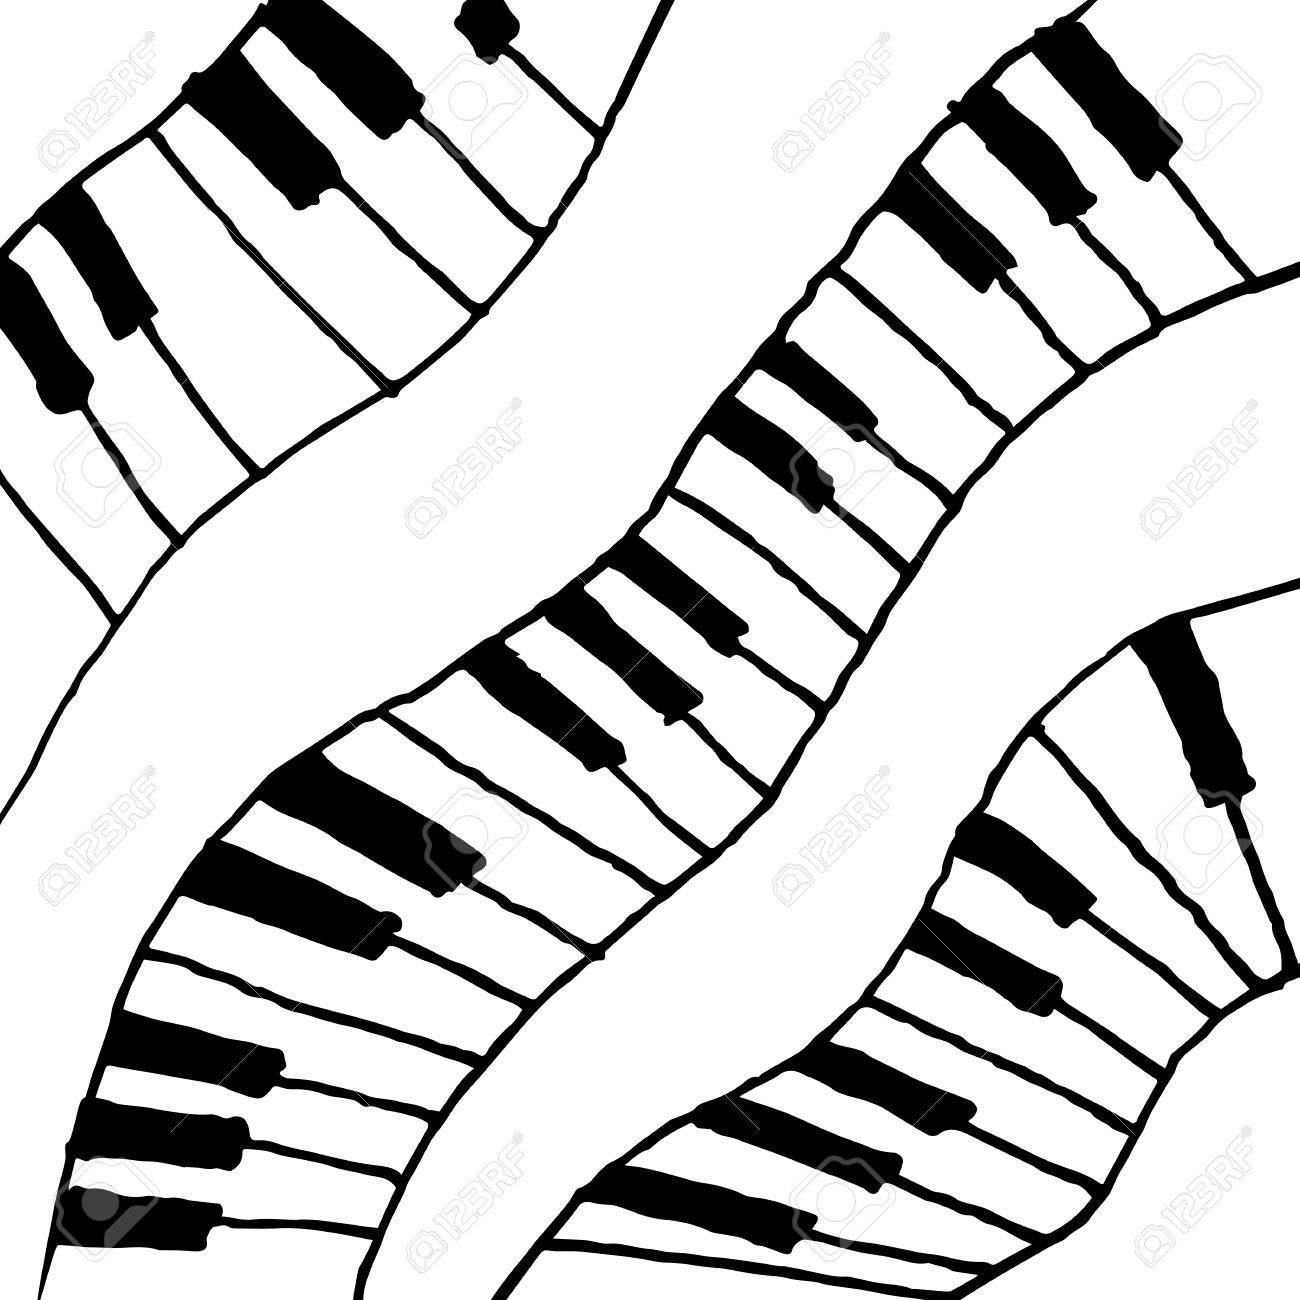 1300x1300 Piano Keys Sketch. Abstract Music Background. Monochrome Design